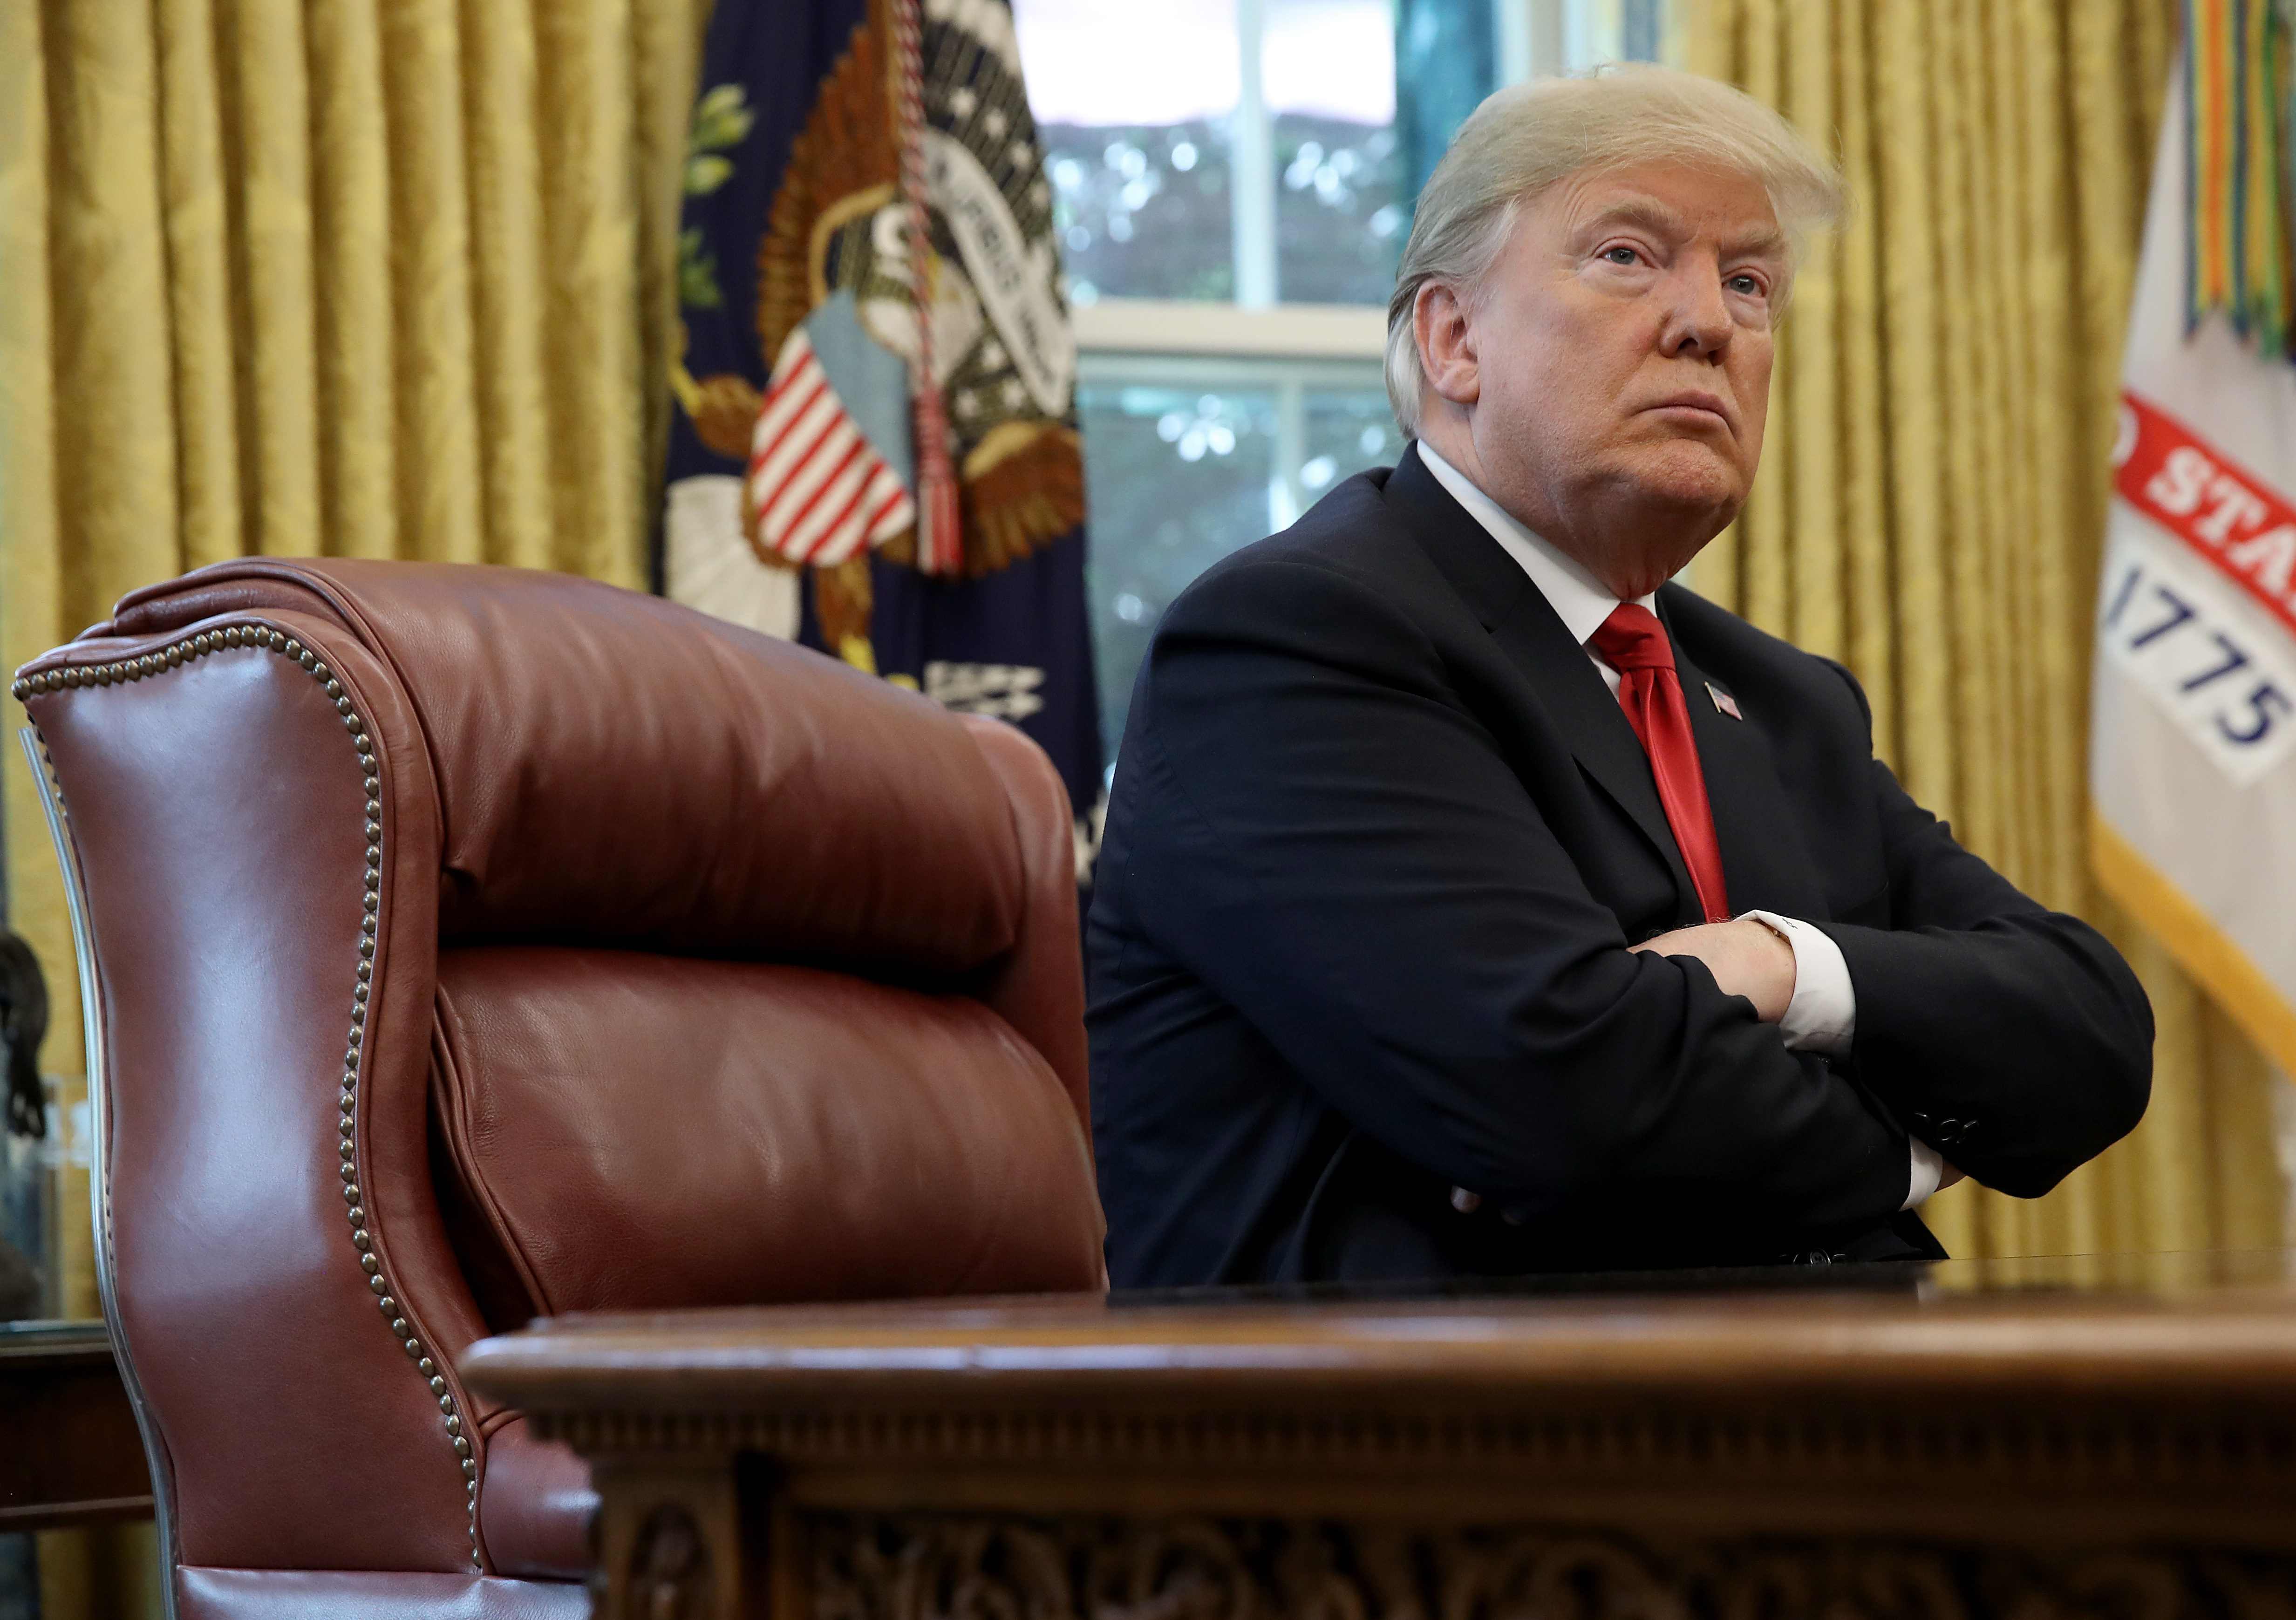 President Trump sitting with his arms crossed at his desk in the Oval Office of the White House.